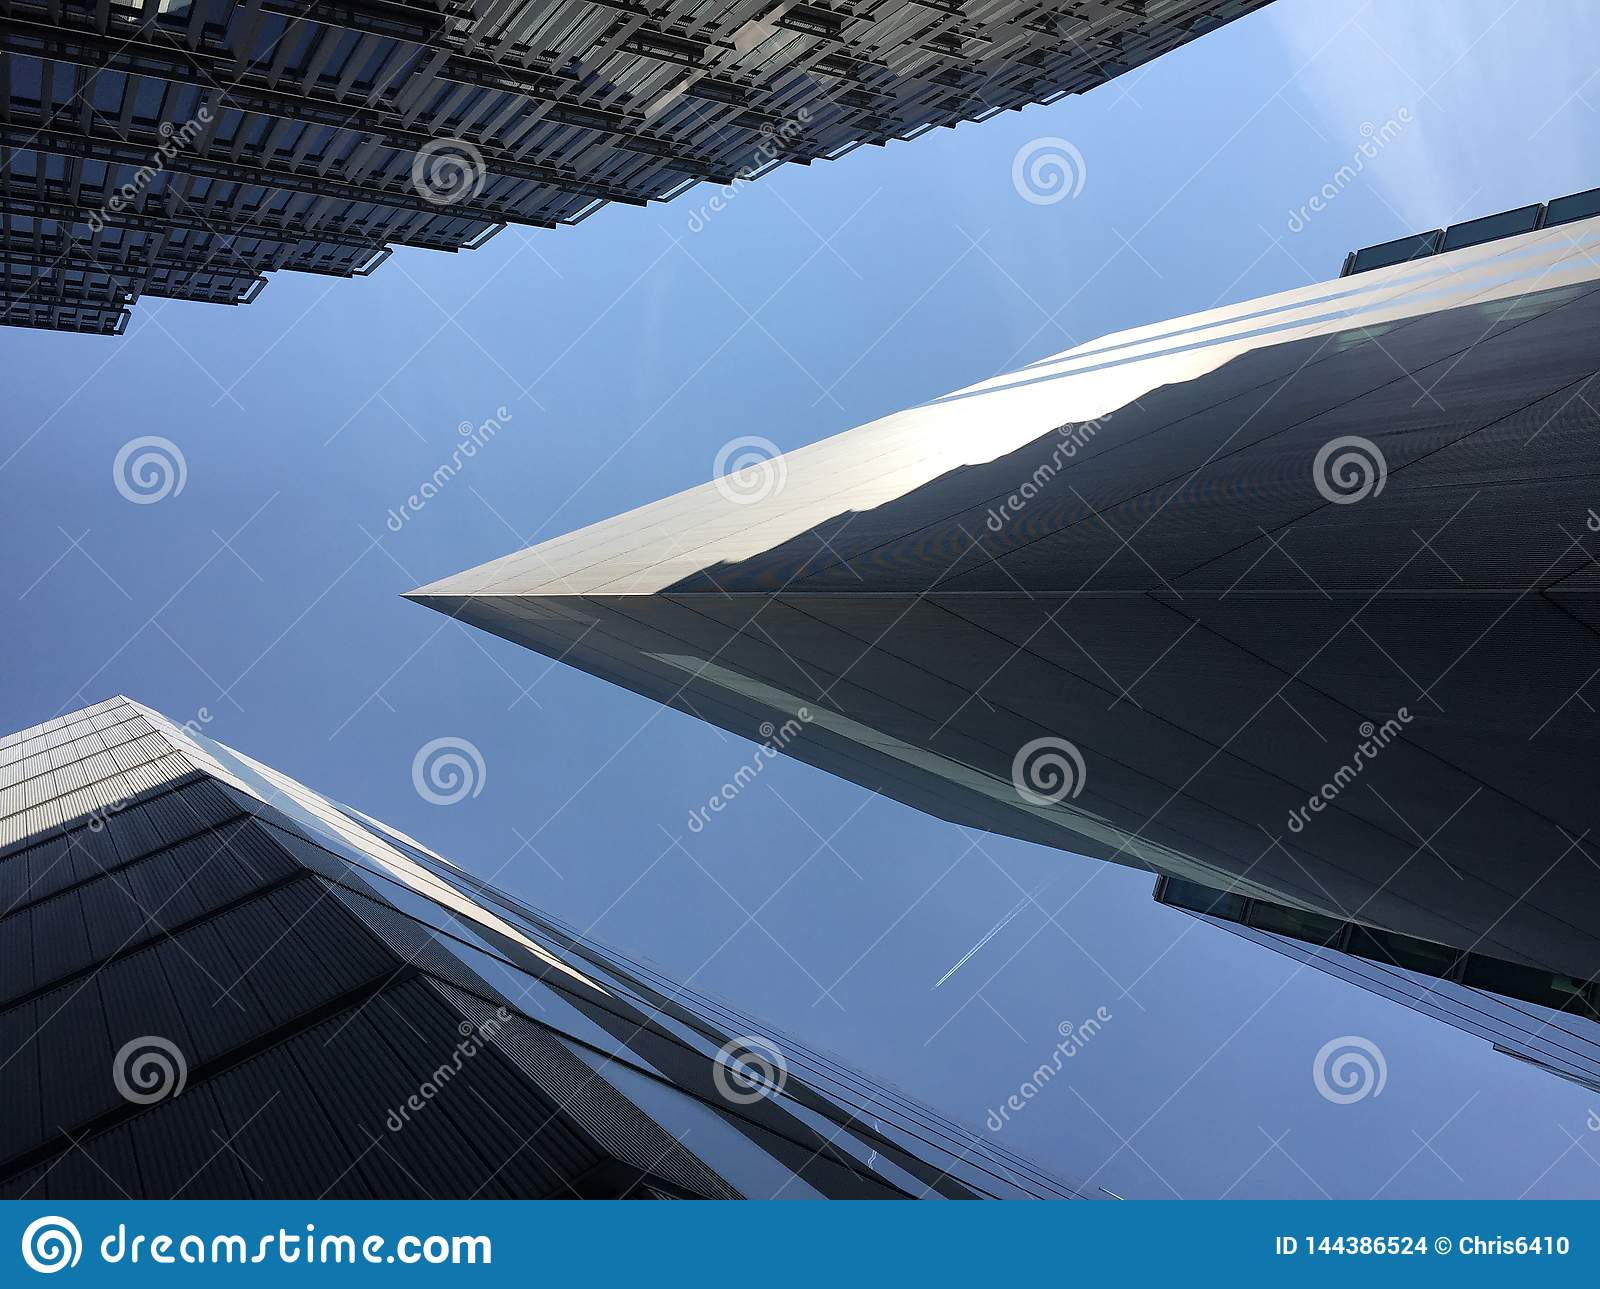 Abstract view of modern architecture with a plane passing overhead in London